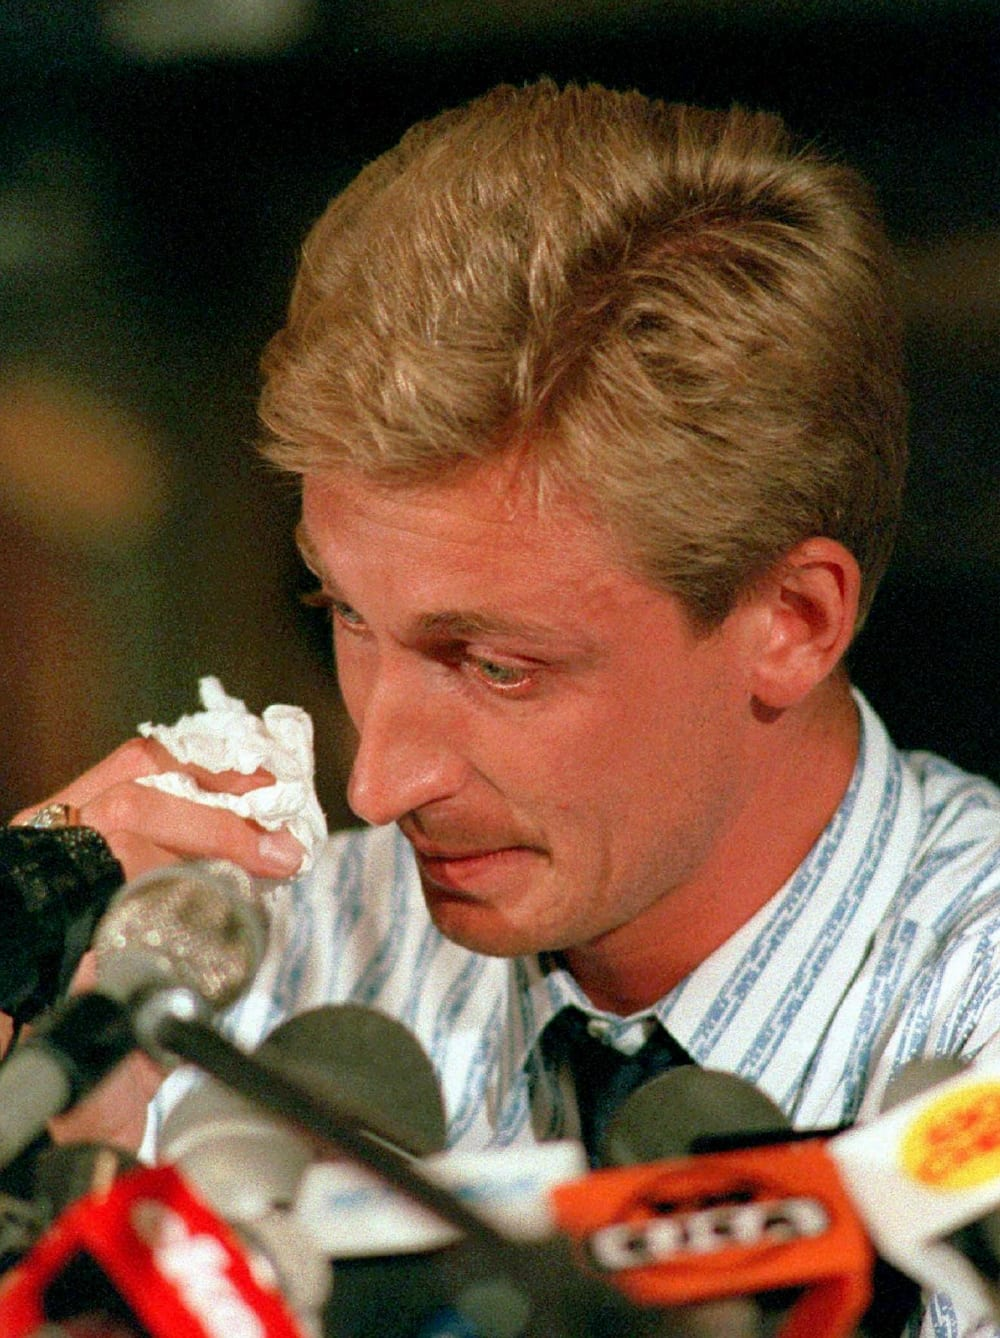 Wayne Gretzky wipes a tear during a news conference in Edmonton, Alta., announcing his trade from the Edmonton Oilers to the Los Angeles Kings August 9, 1988. (AP Photo/Ray Giguere)